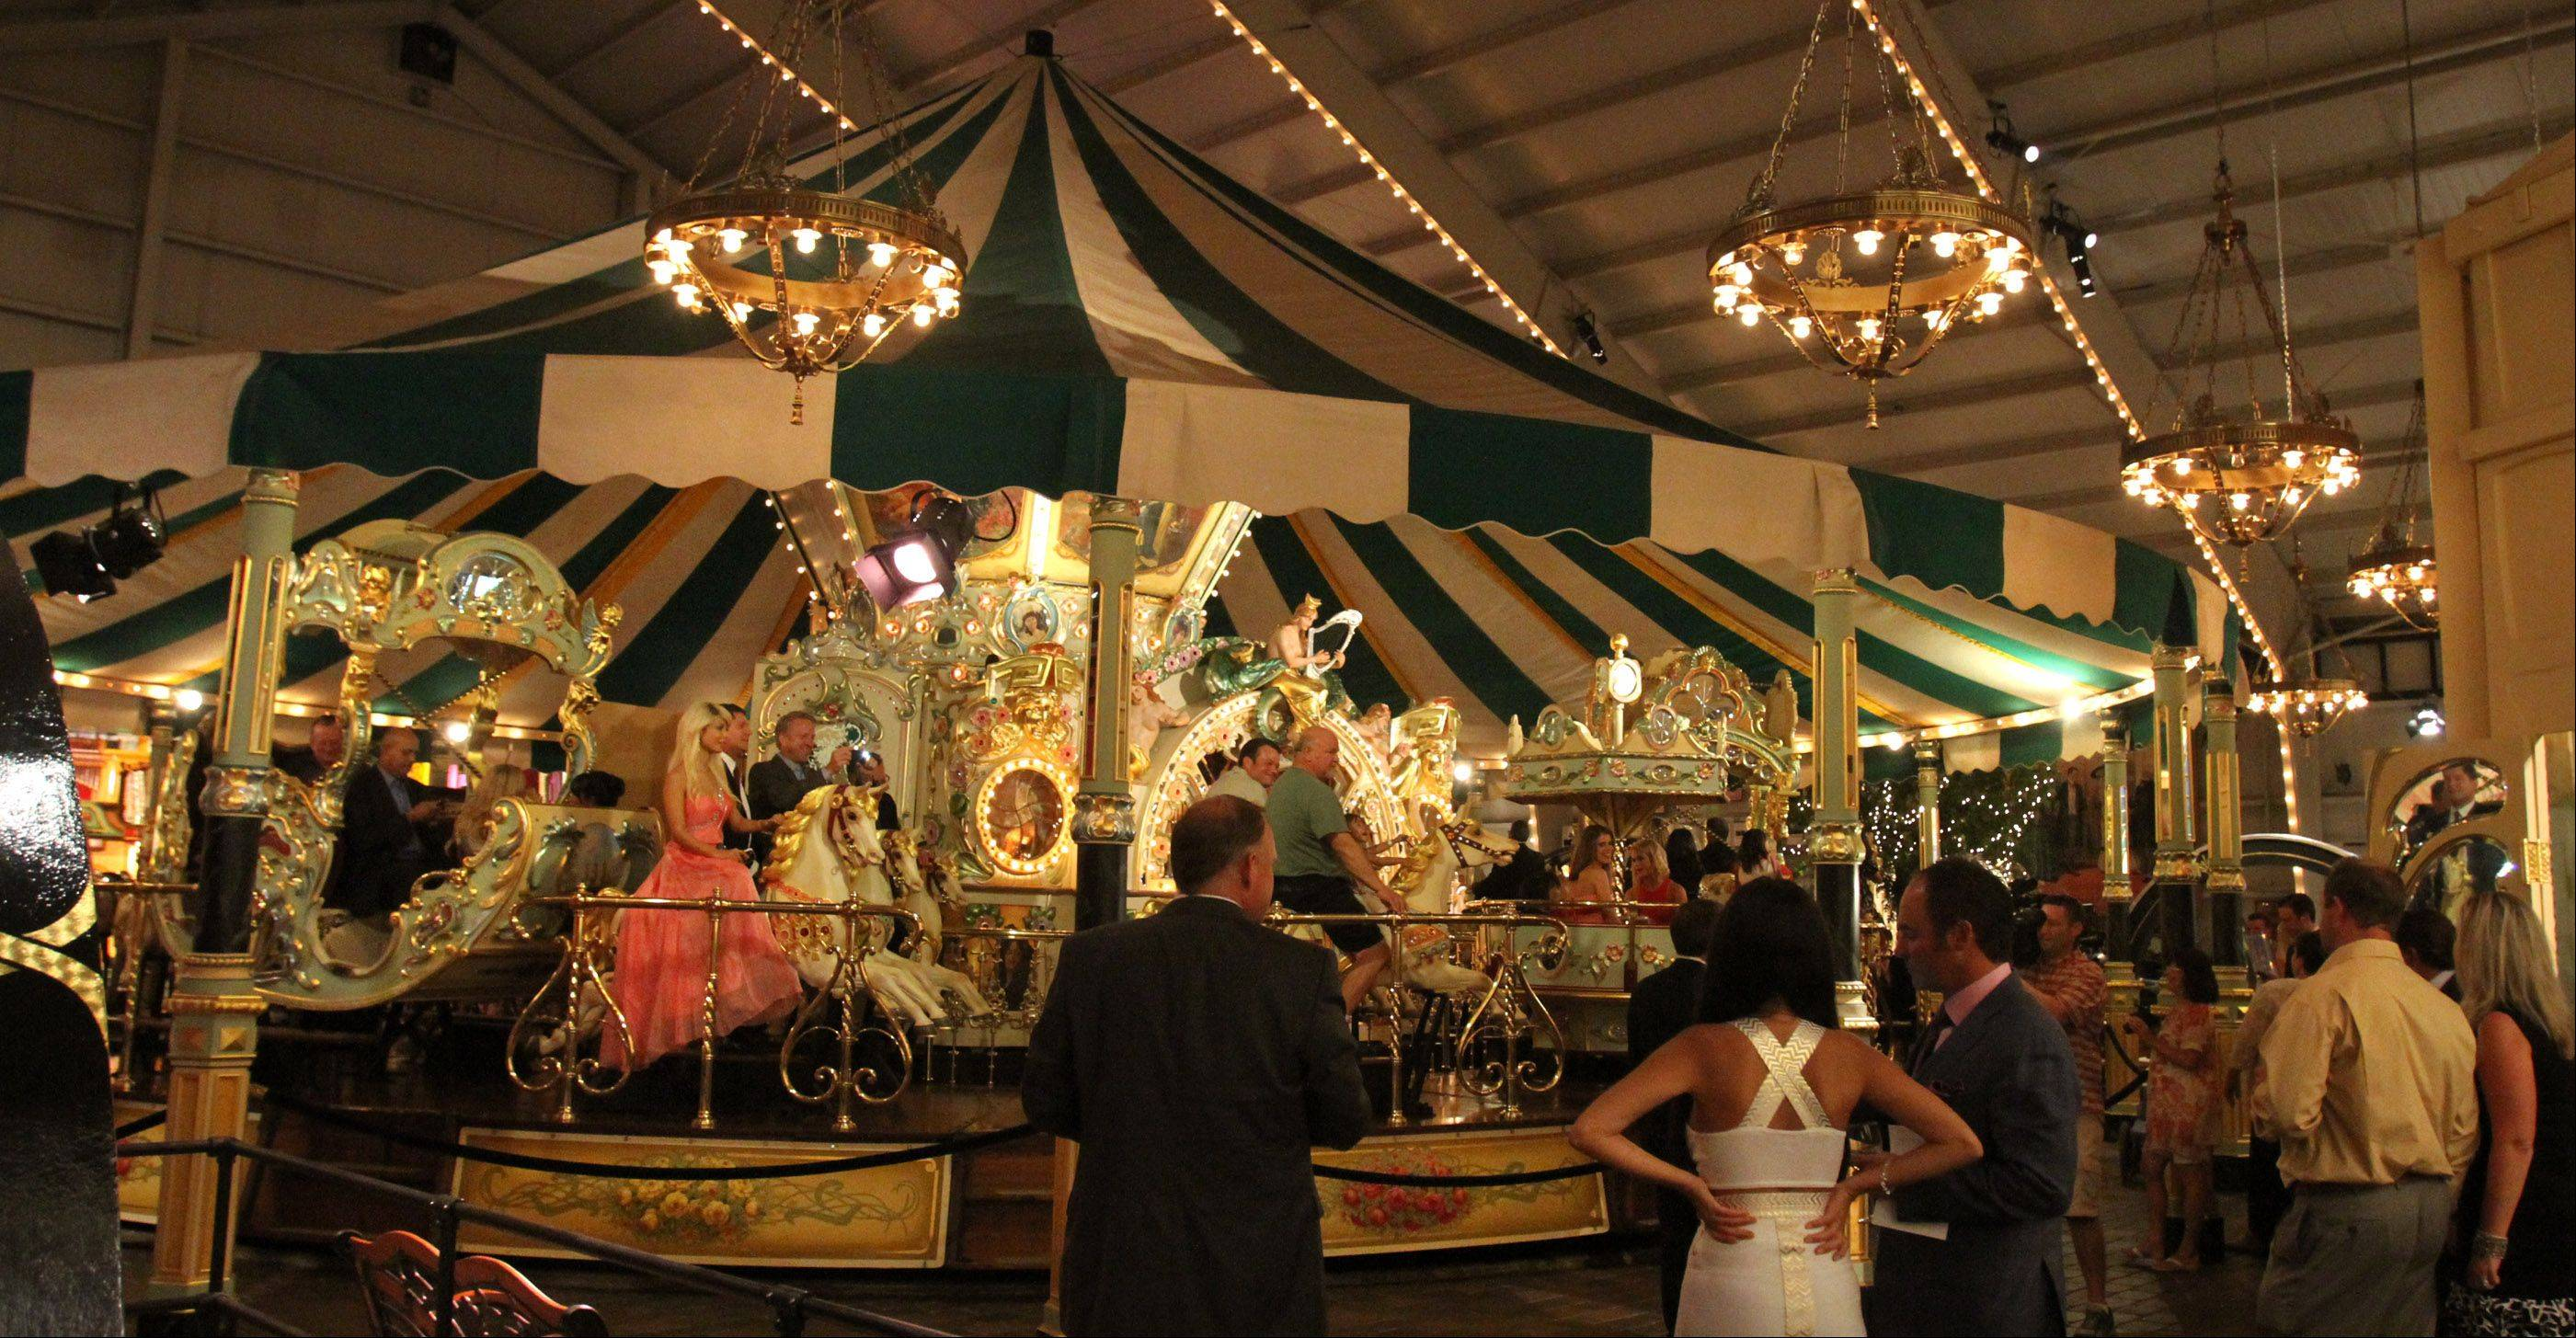 Guests watch as the elaborate Eden Palais Carousel twirls its occupants.